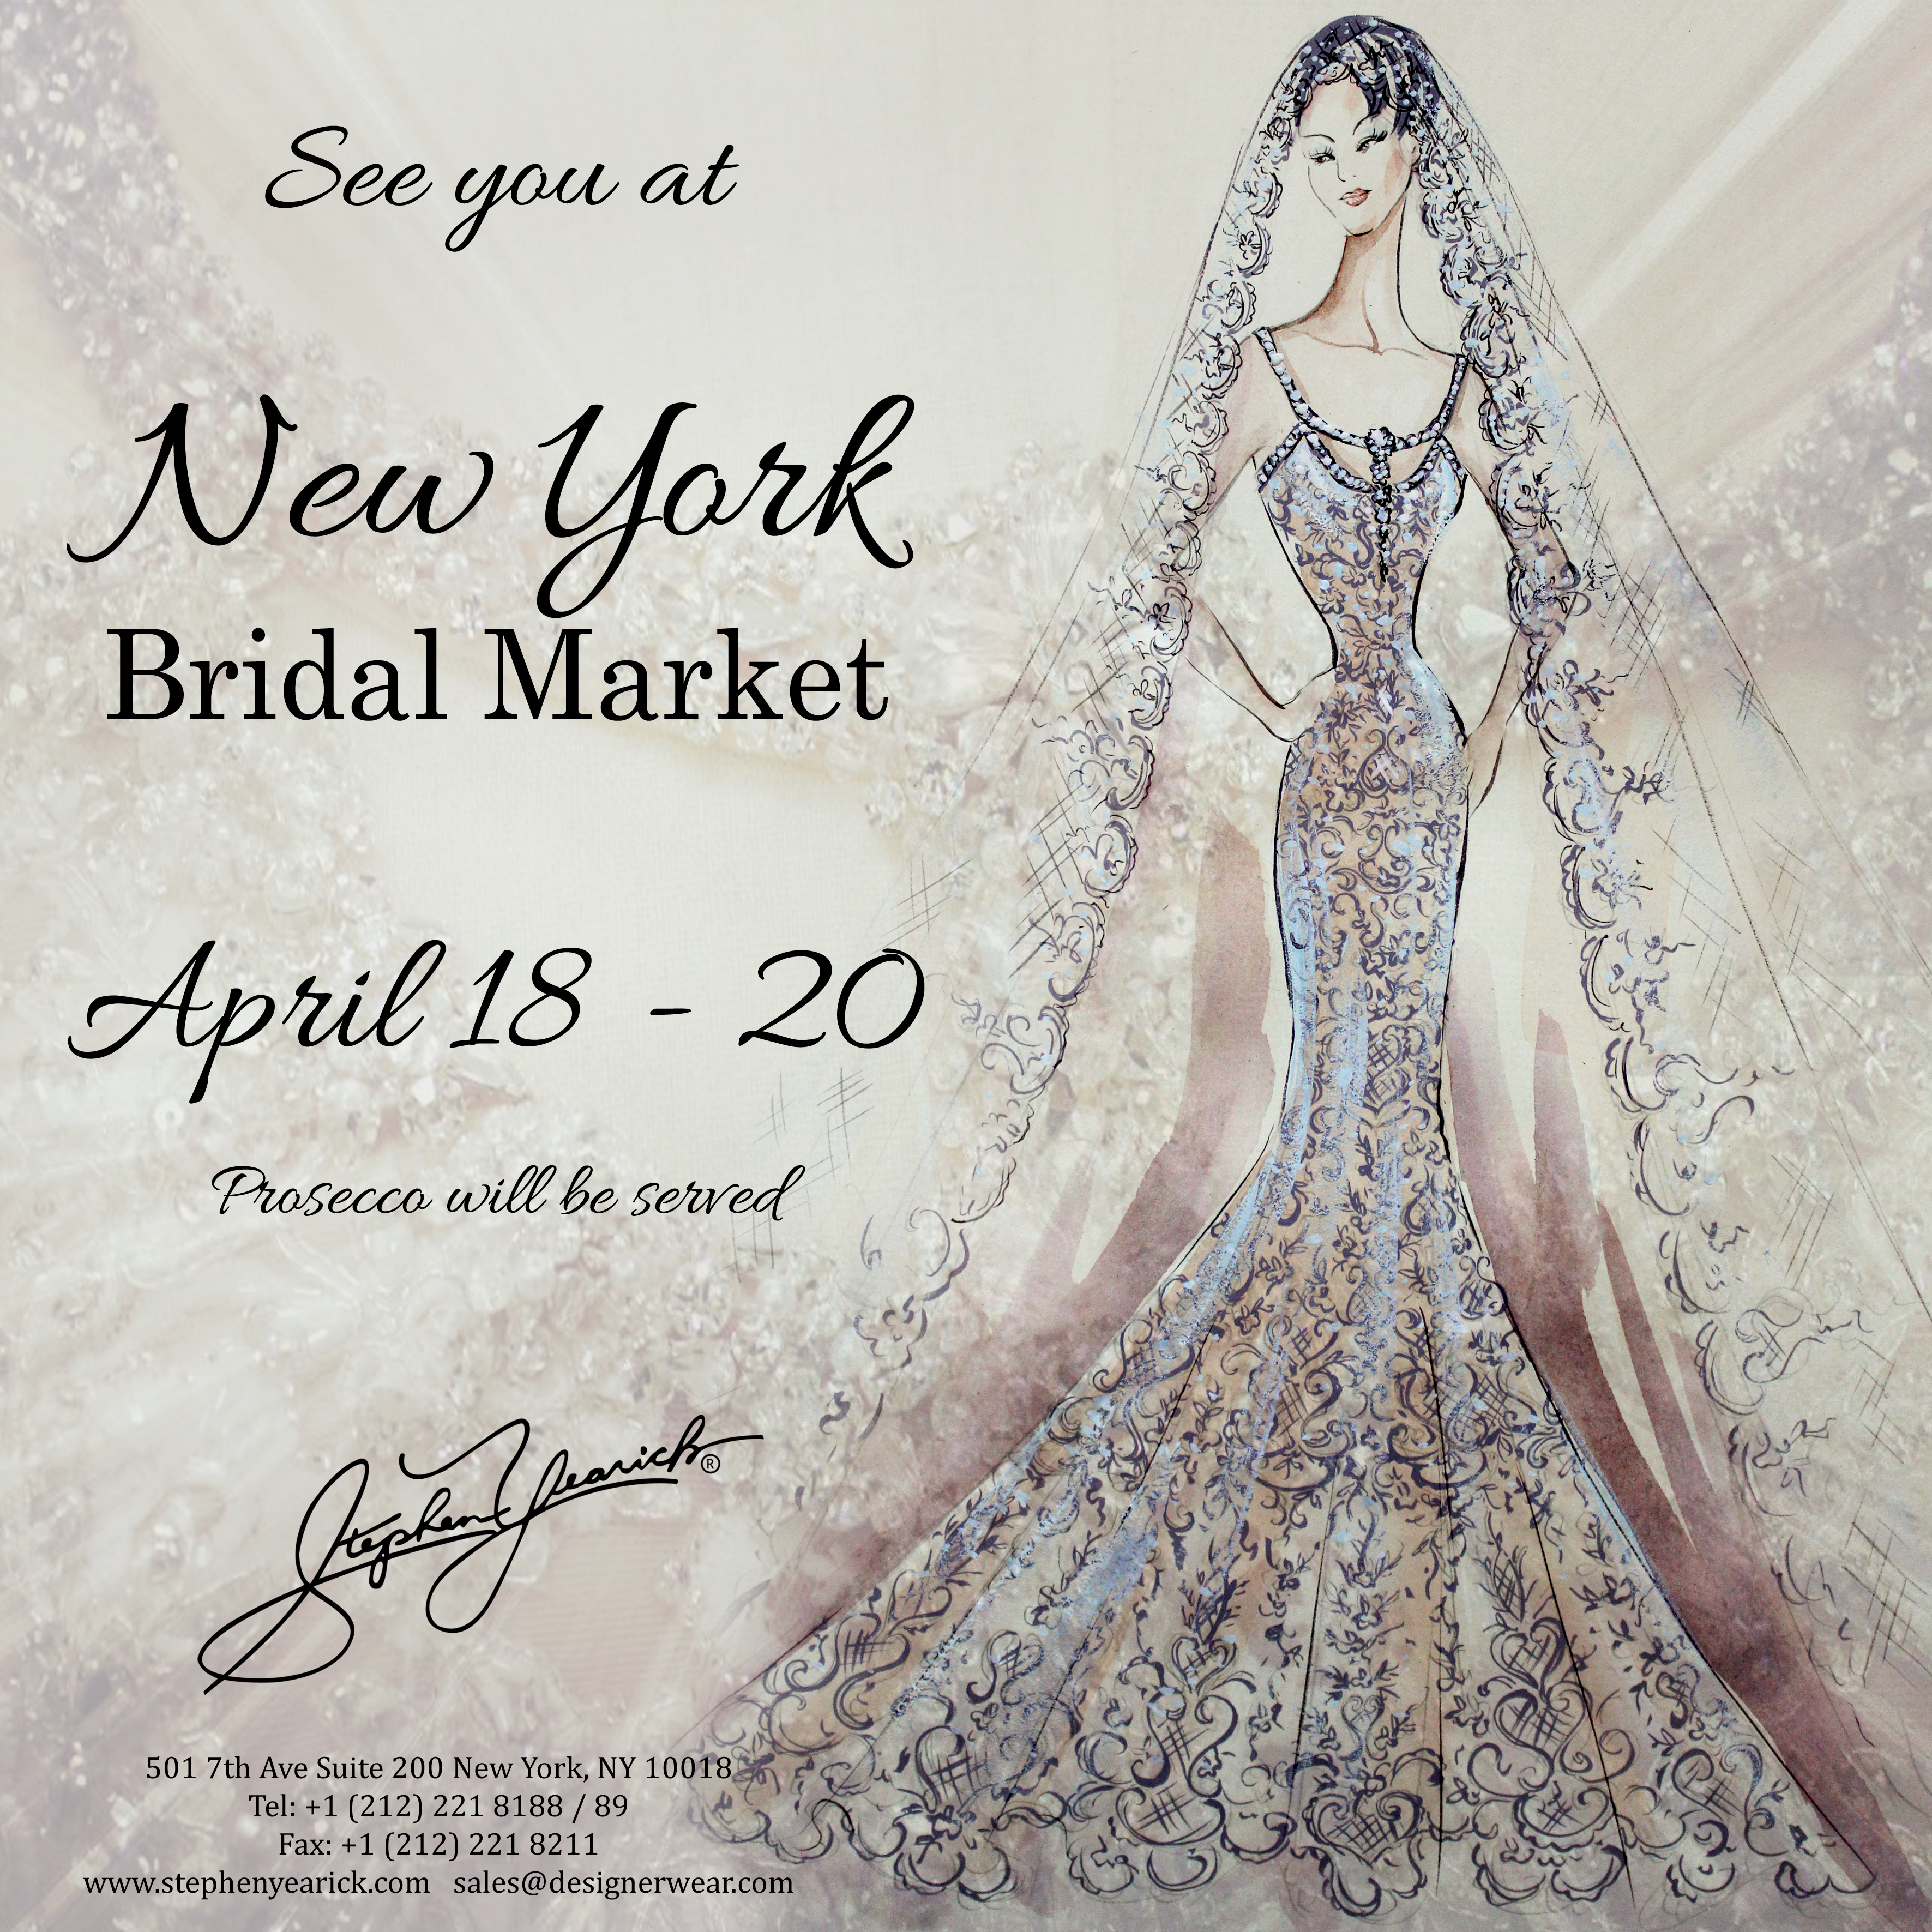 New York Bridal Market